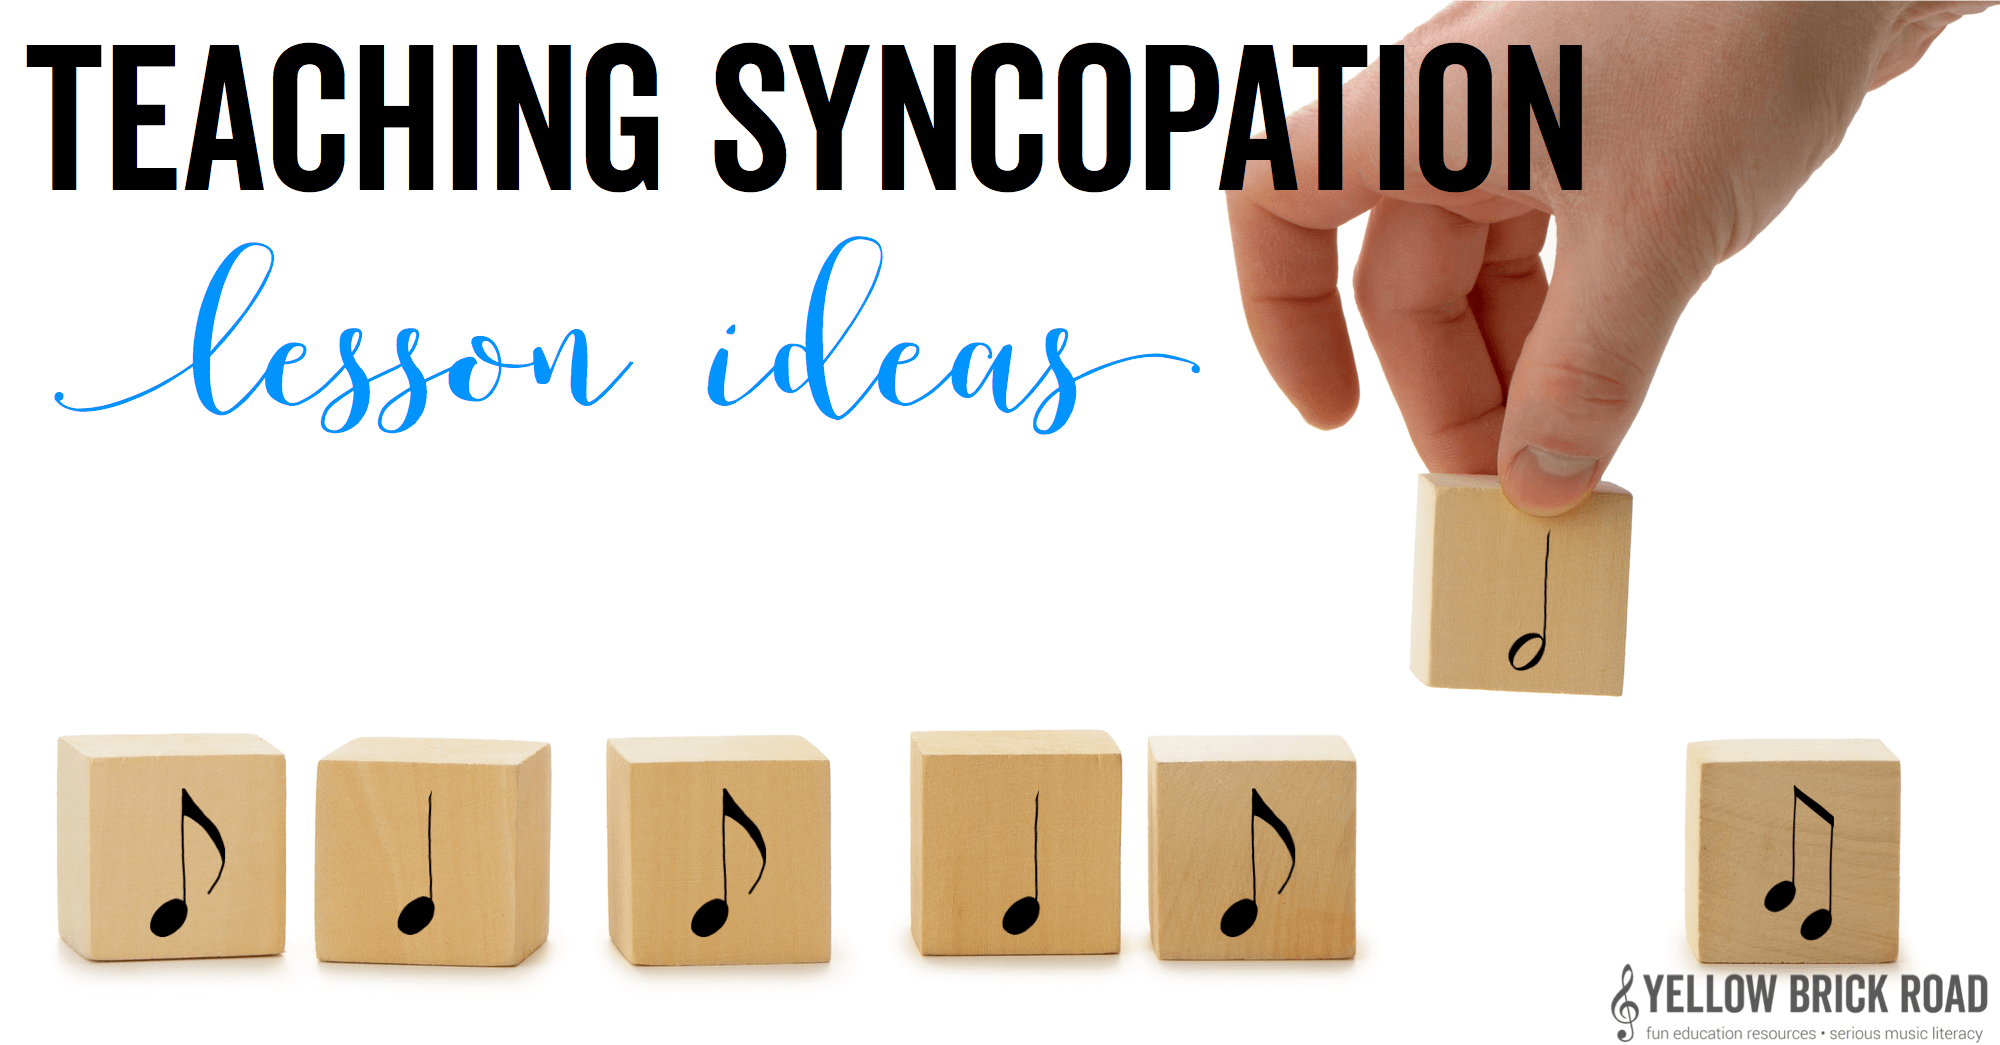 Teaching Syncopation: part one